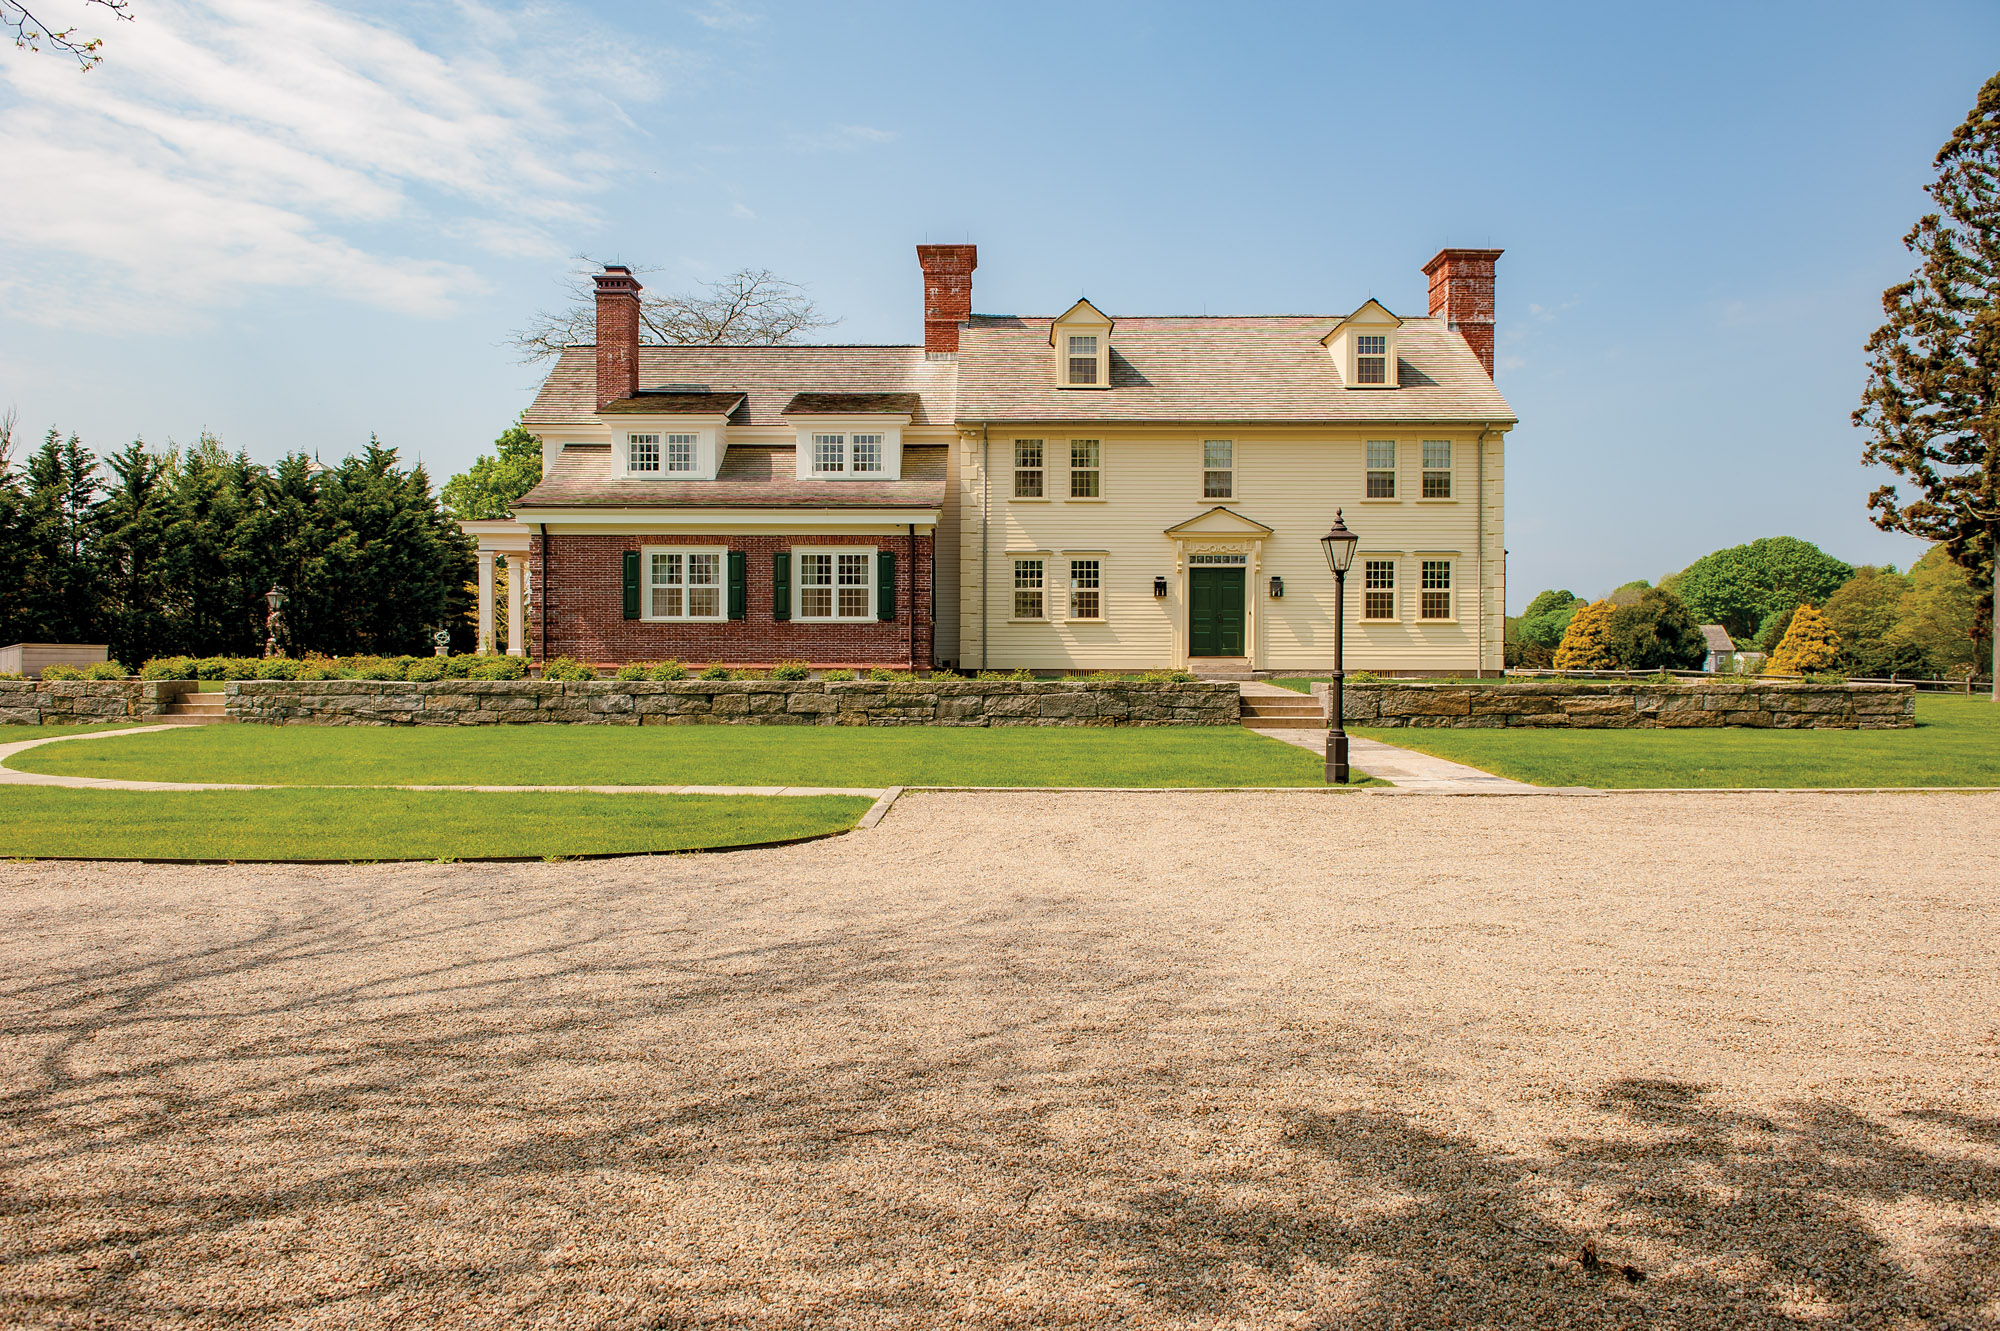 Upgrading an 18th-century House